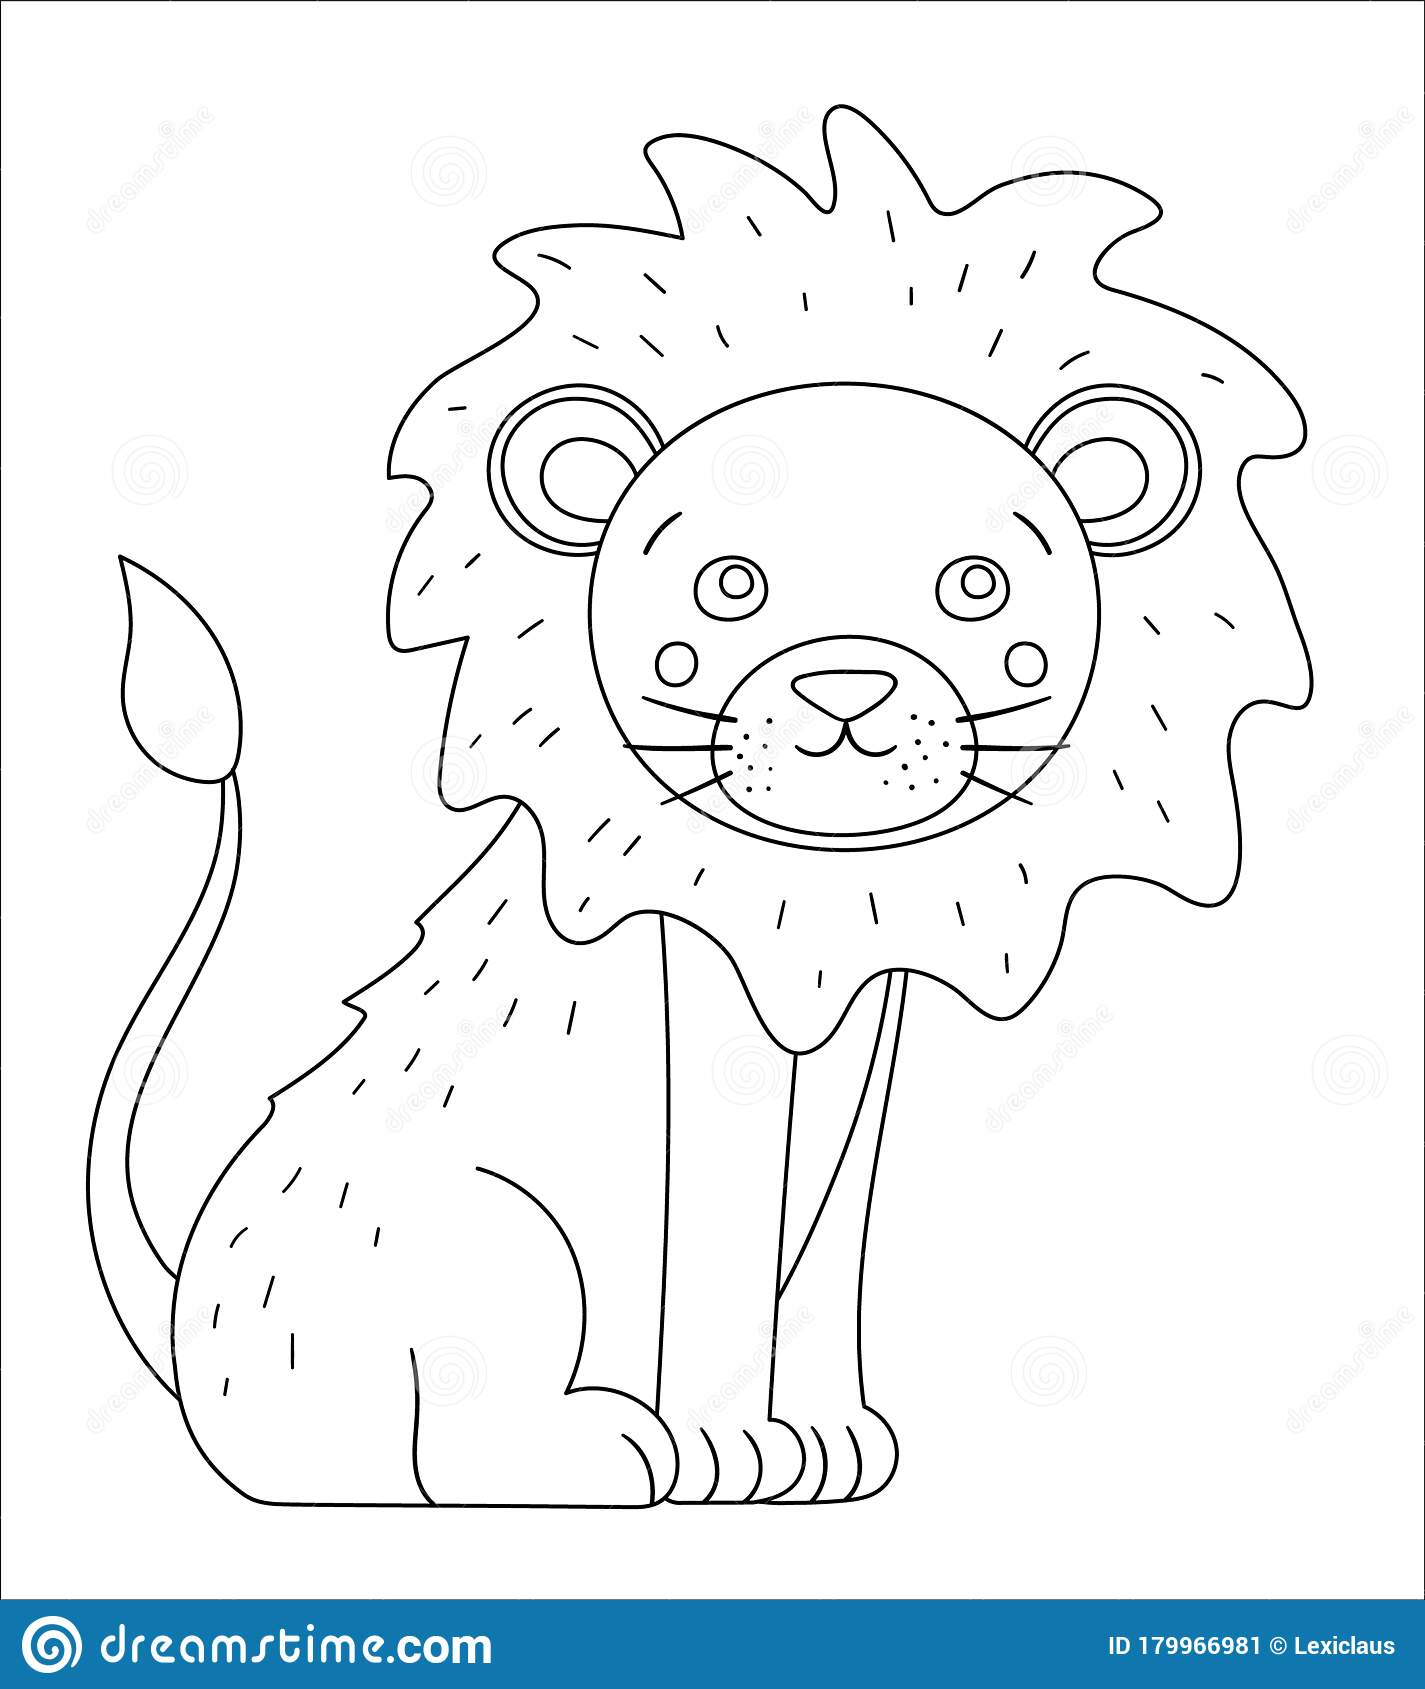 Lion Outline Clipart Black And White : Lion logo roar , lions, lion y png clipart.